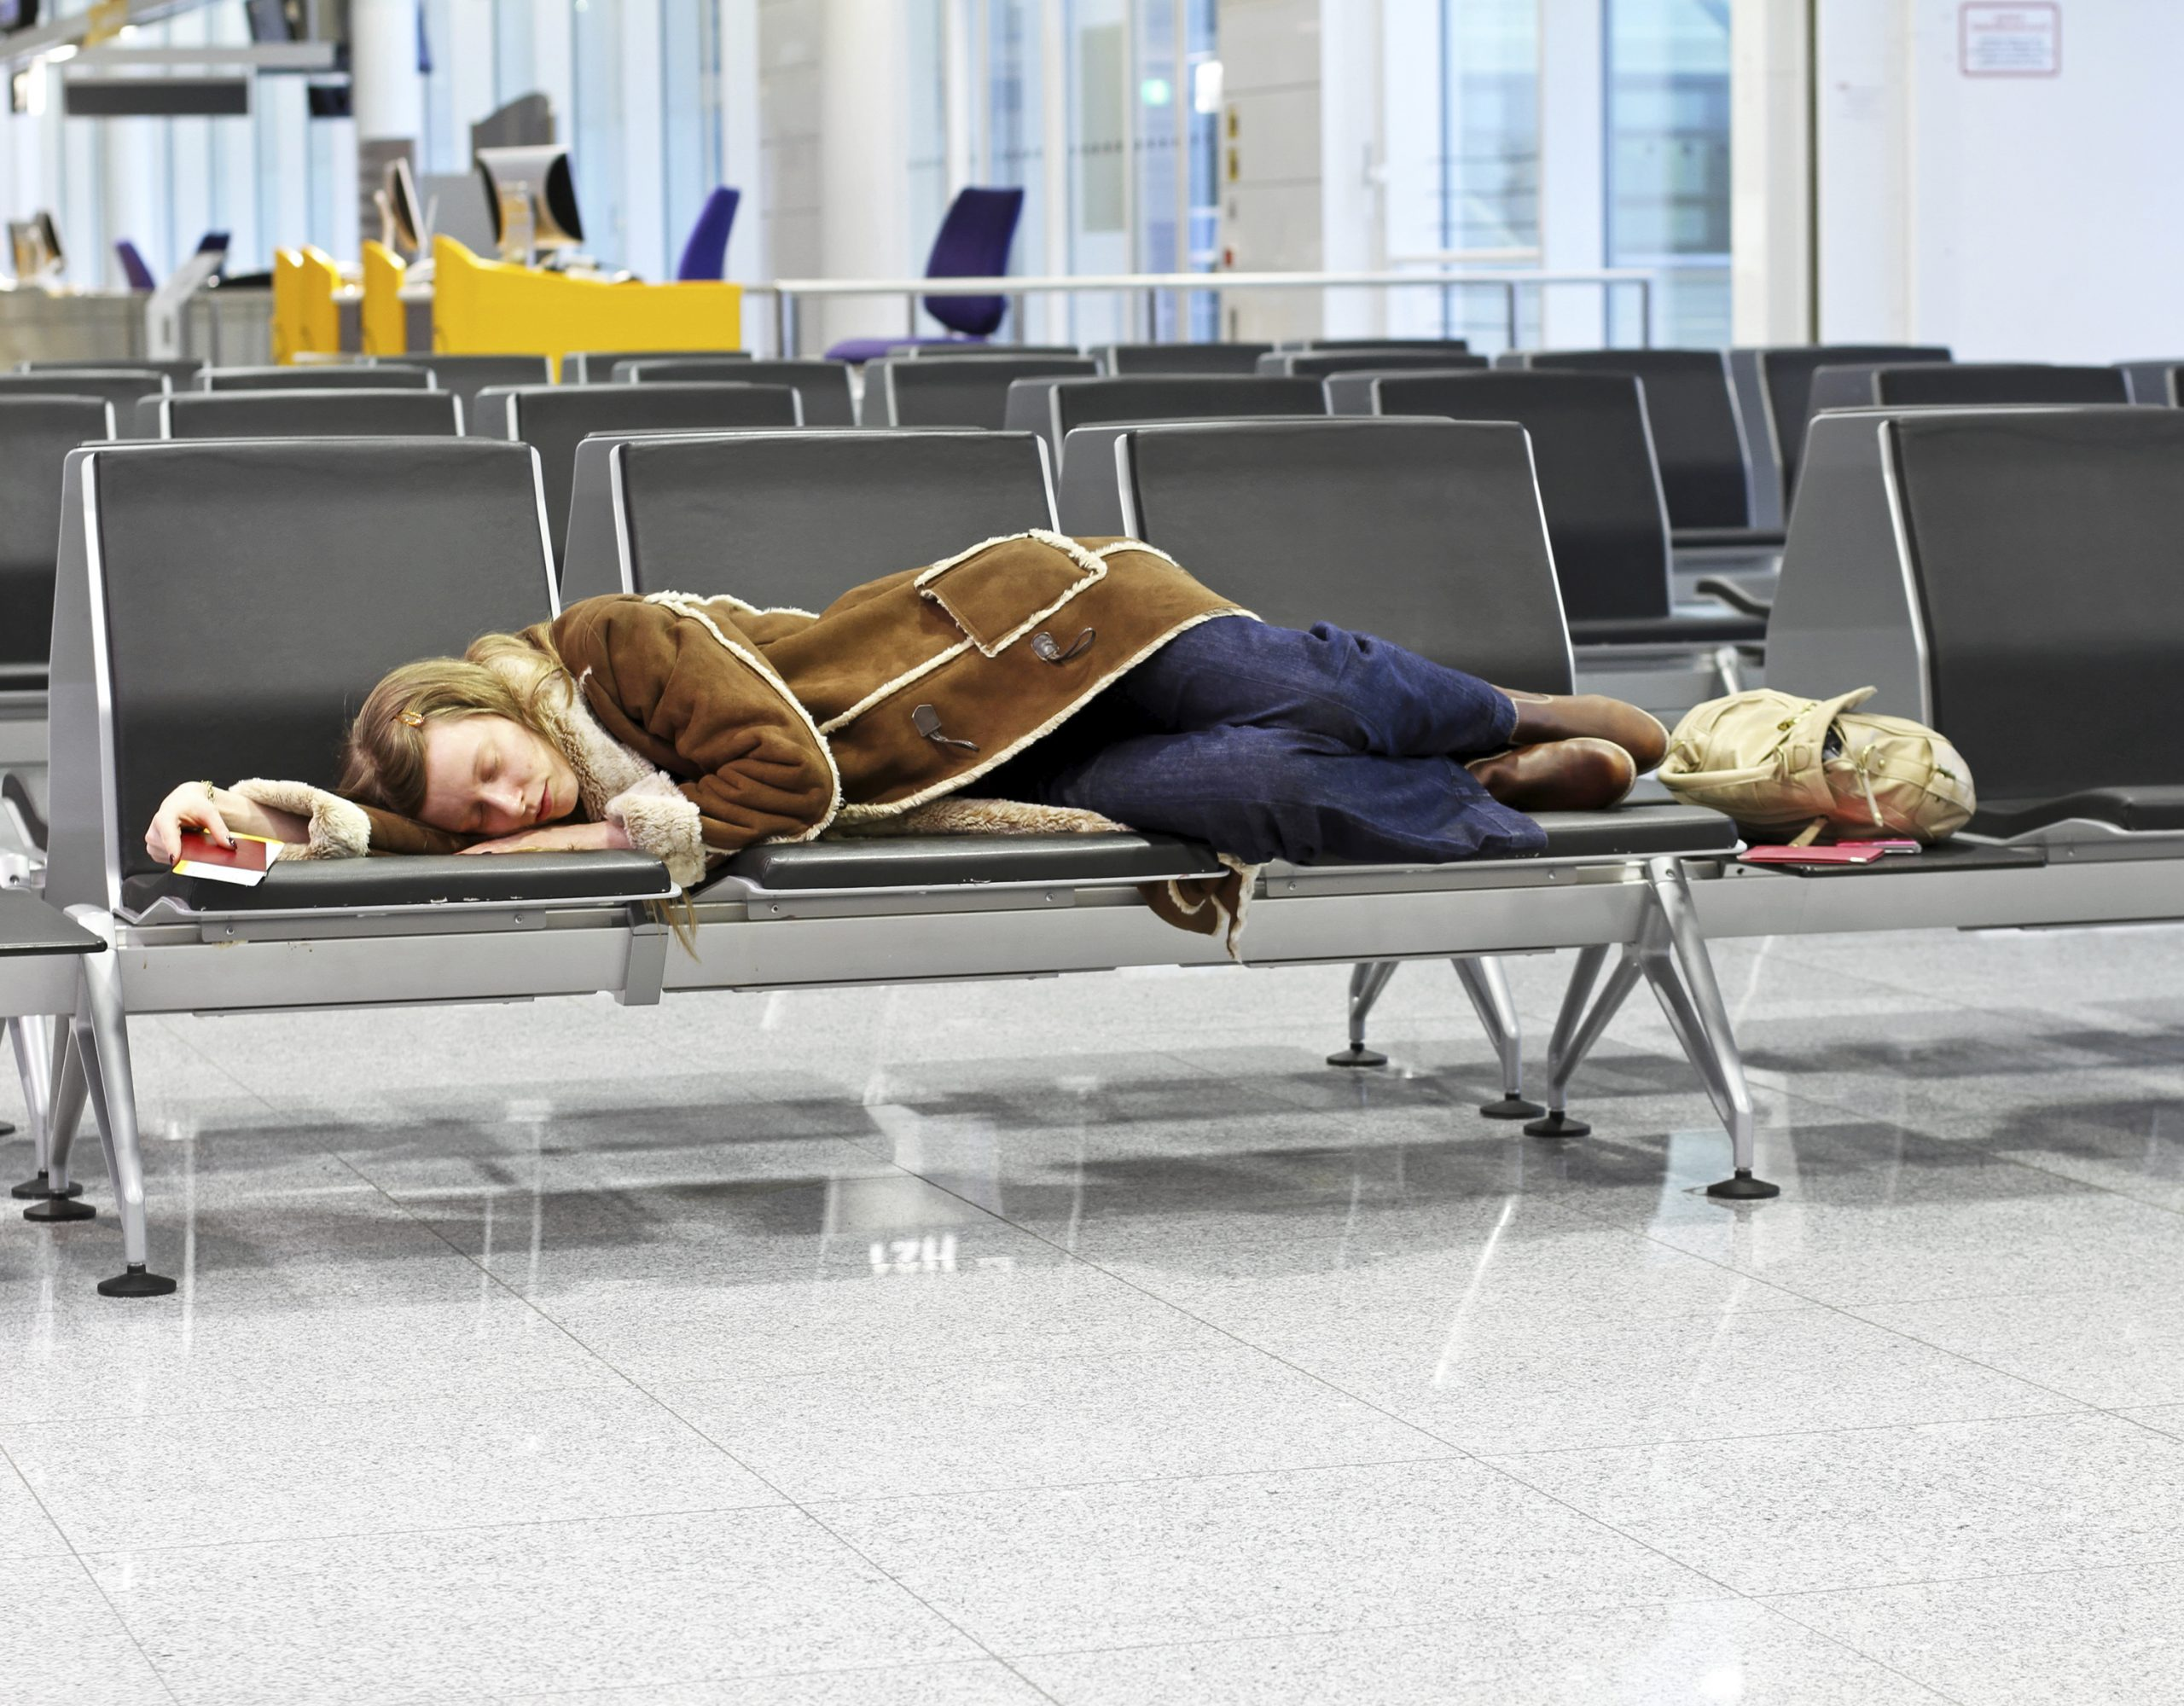 1. Sleep in airports instead of getting a hotel